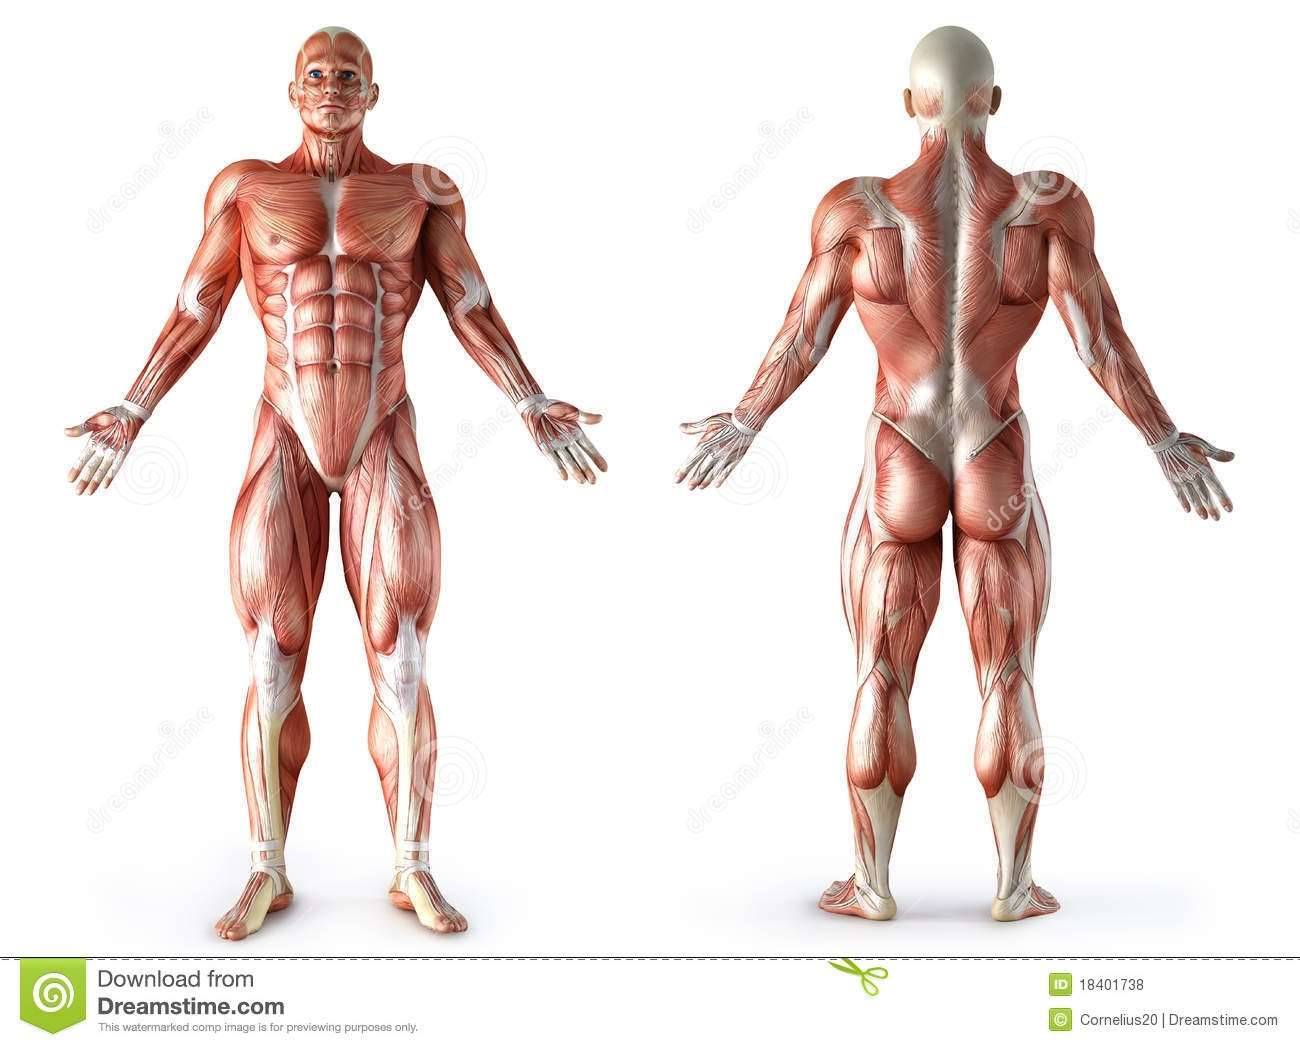 anatomy-muscles-18401738